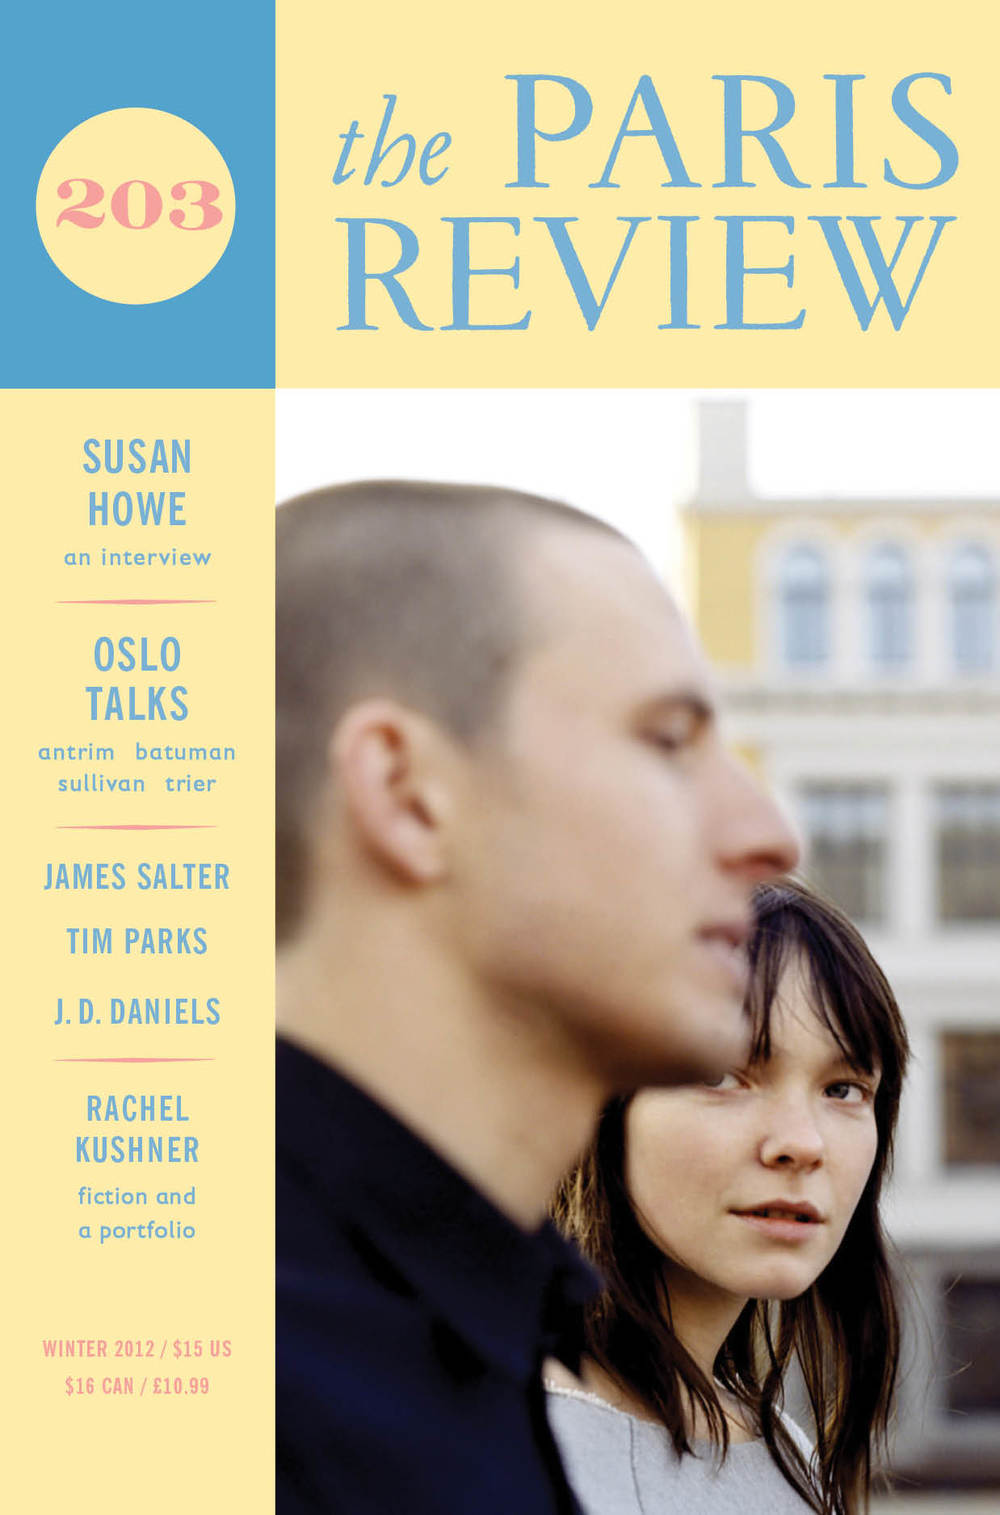 "theparisreview :       Announcing our Winter issue !    Susan Howe on the art of poetry: ""I often think of the space of a page as a stage, with words, letters, syllable characters moving across."" And discussion excerpts from the  First Annual Norwegian-American Literary Festival , including Donald Antrim, Elif Batuman, Graywolf publisher Fiona McCrae, and Norwegian filmmaker Joachim Trier.   New fiction from  James Salter ,  Rachel Kushner ,  Sarah Frisch ,  Tim Parks ,  Peter Orner , and the winner of the  NPR Three-Minute Fiction Contest , and an essay by  J. D. Daniels .   Poems by Ben Lerner, Linda Pastan, Devin Johnston, Yasiin Bey, Geoffrey Hill, Regan Good,  Joshua Mehigan , and Steven Cramer. A  portfolio of images  that inspired Rachel Kushner's novel  The Flamethrowers .    Subscribe now !     Really into this,   obviously  . (You haven't seen   Reprise  ? It's streaming online.)"